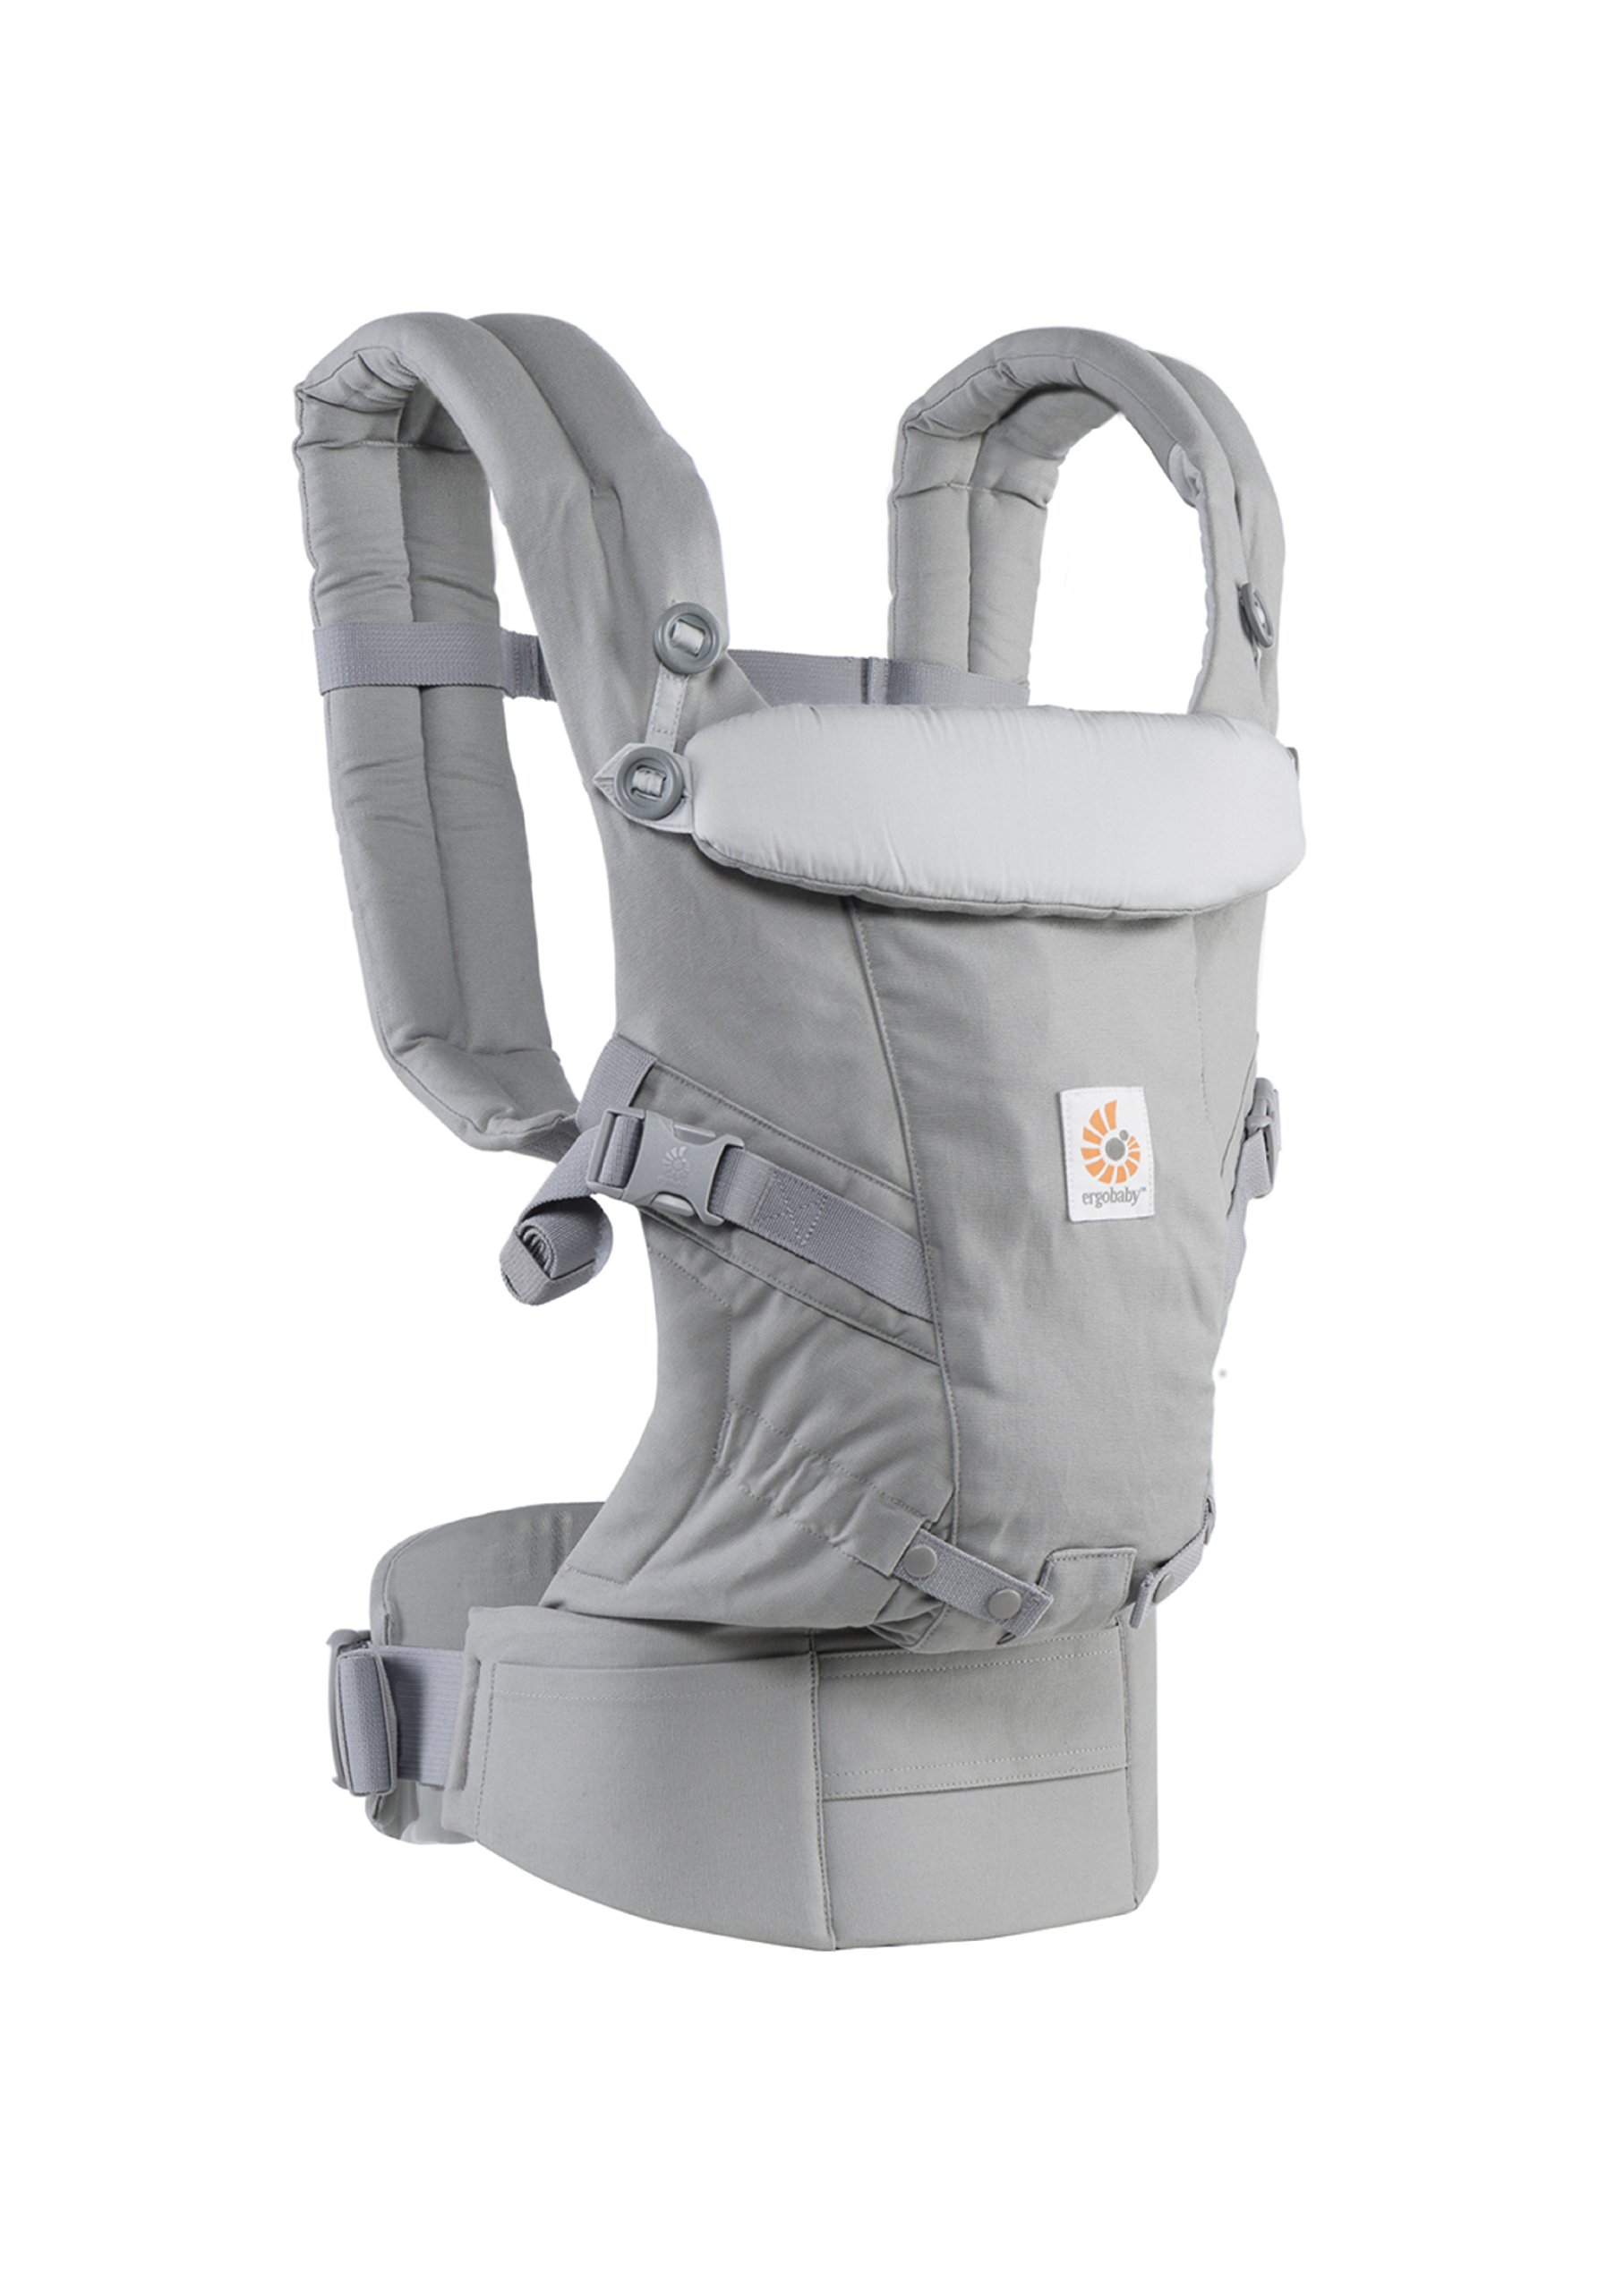 ErgoBaby Adapt Baby Carrier Grey Ergobaby Adapt to Every Baby Easy. Adjustable. Newborn to toddler. 6